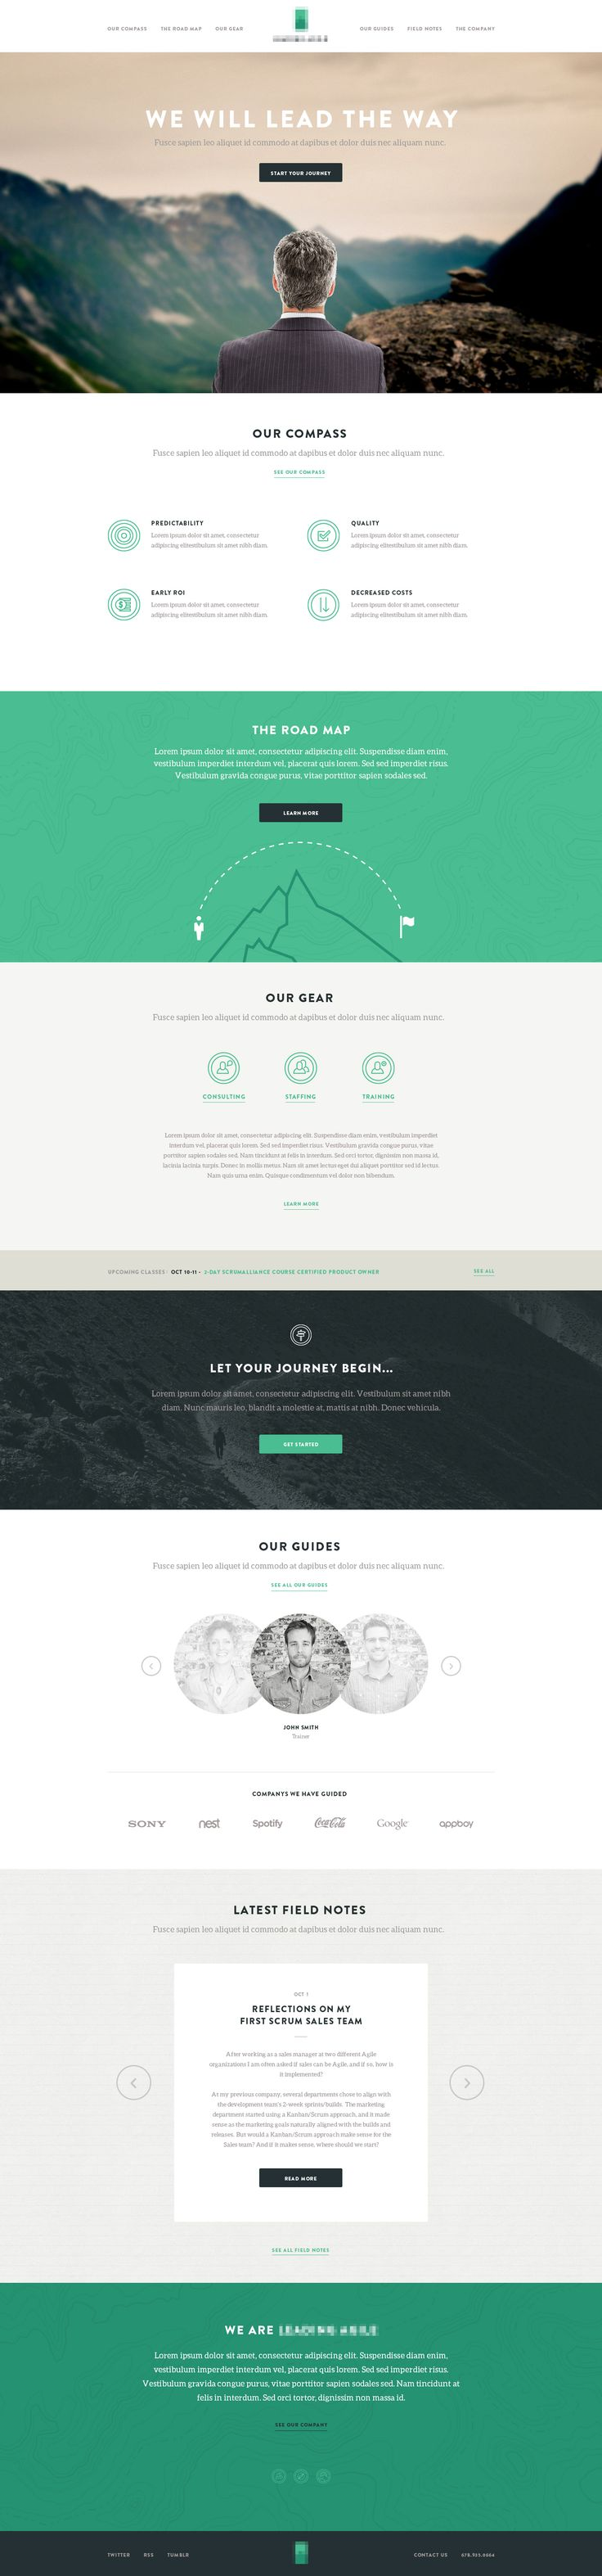 Likes: The Whole Deal. Use Of Color And White Space. The Simplicity. Simple  Website DesignWebsite DesignsPersonal Website DesignThe LargeThe ...